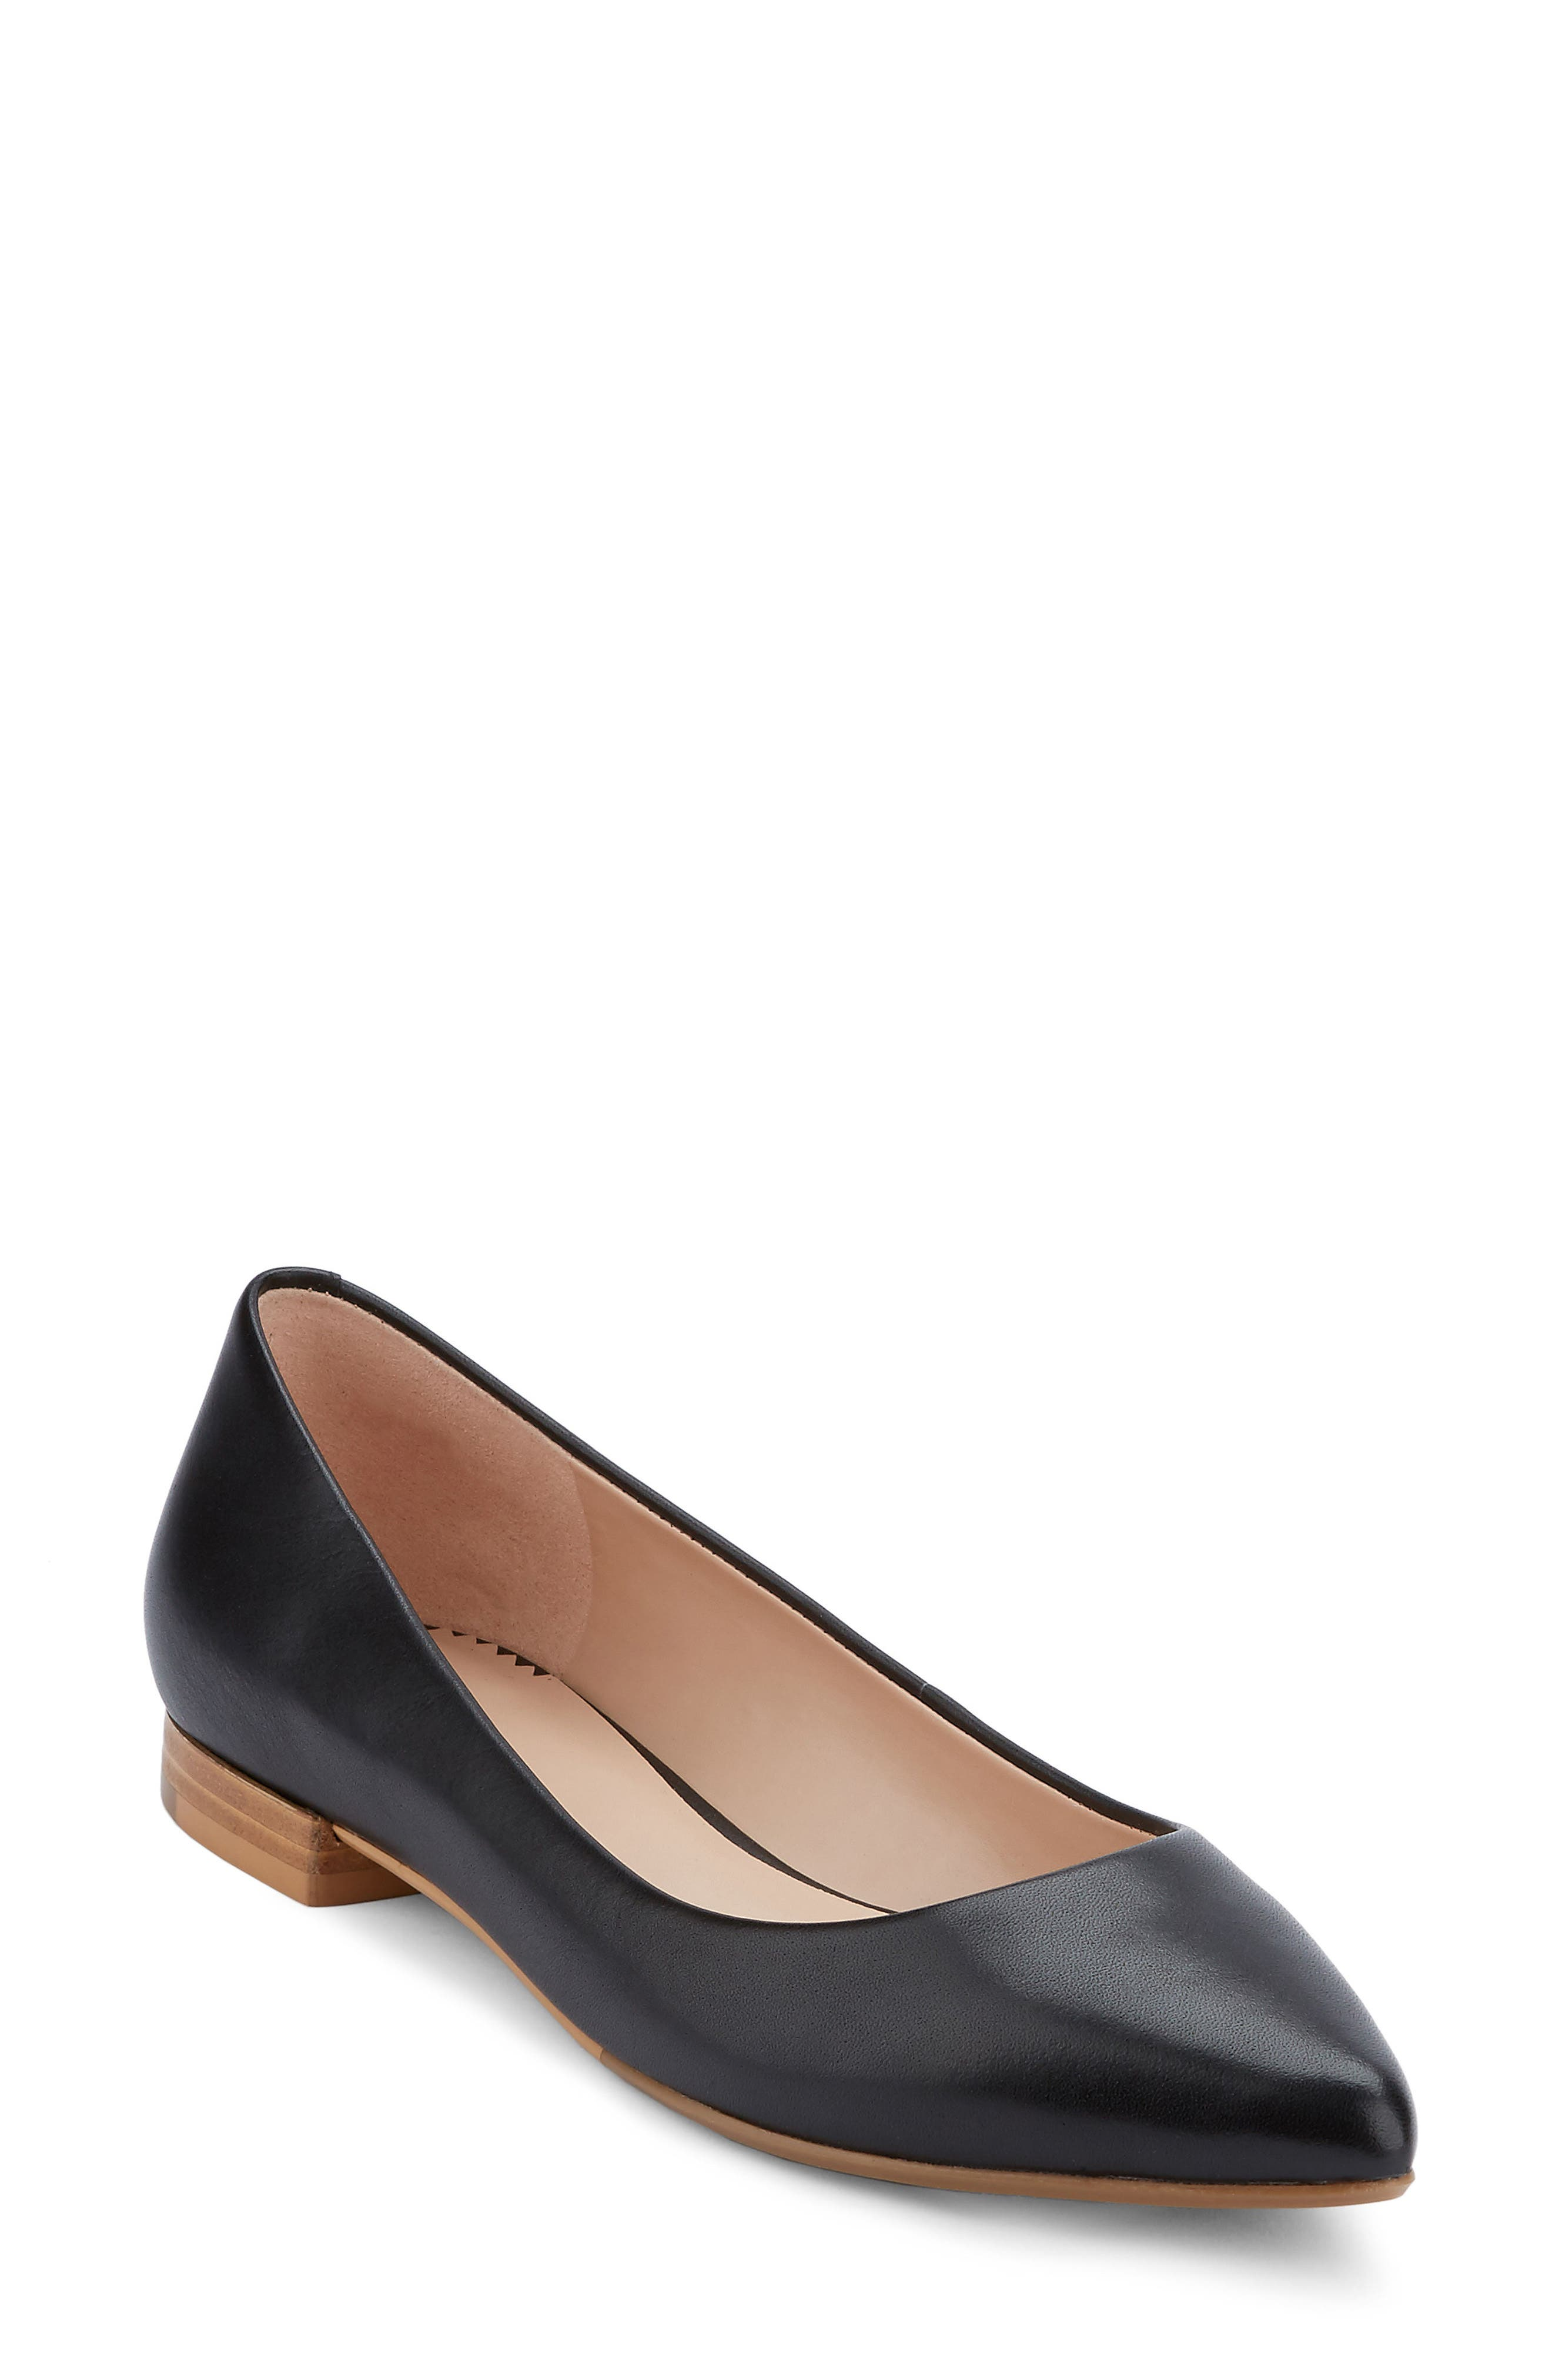 Kayla Pointy Toe Flat,                         Main,                         color, 001